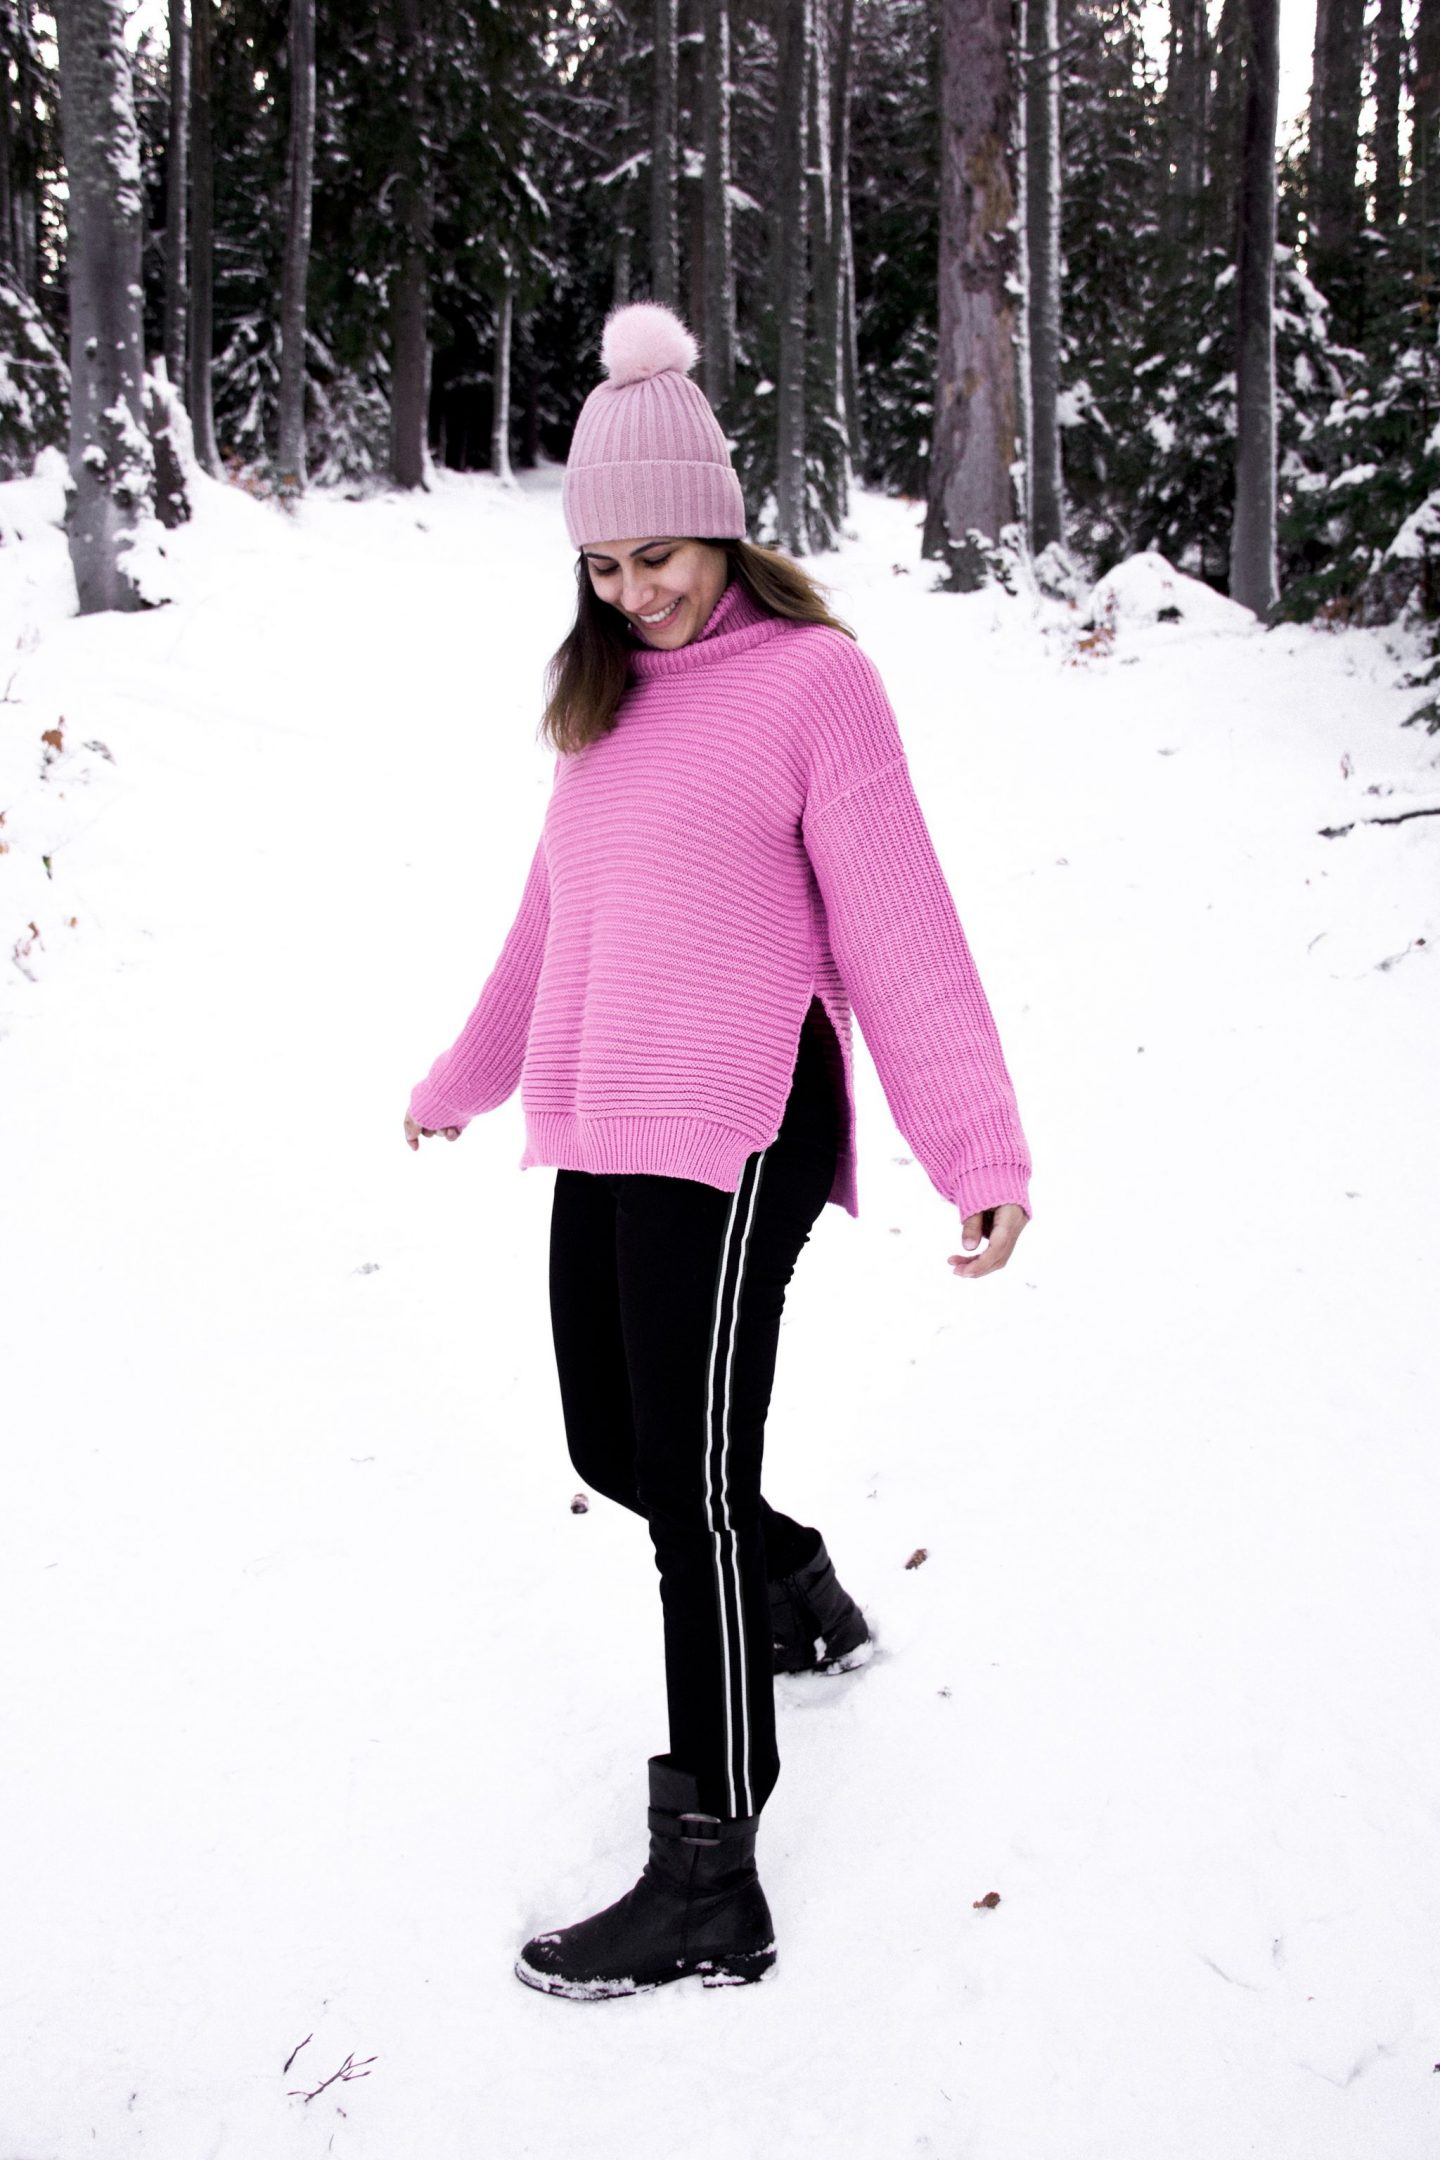 Girl in mountains walking down snowy slope wearing pink jumper and pink hat